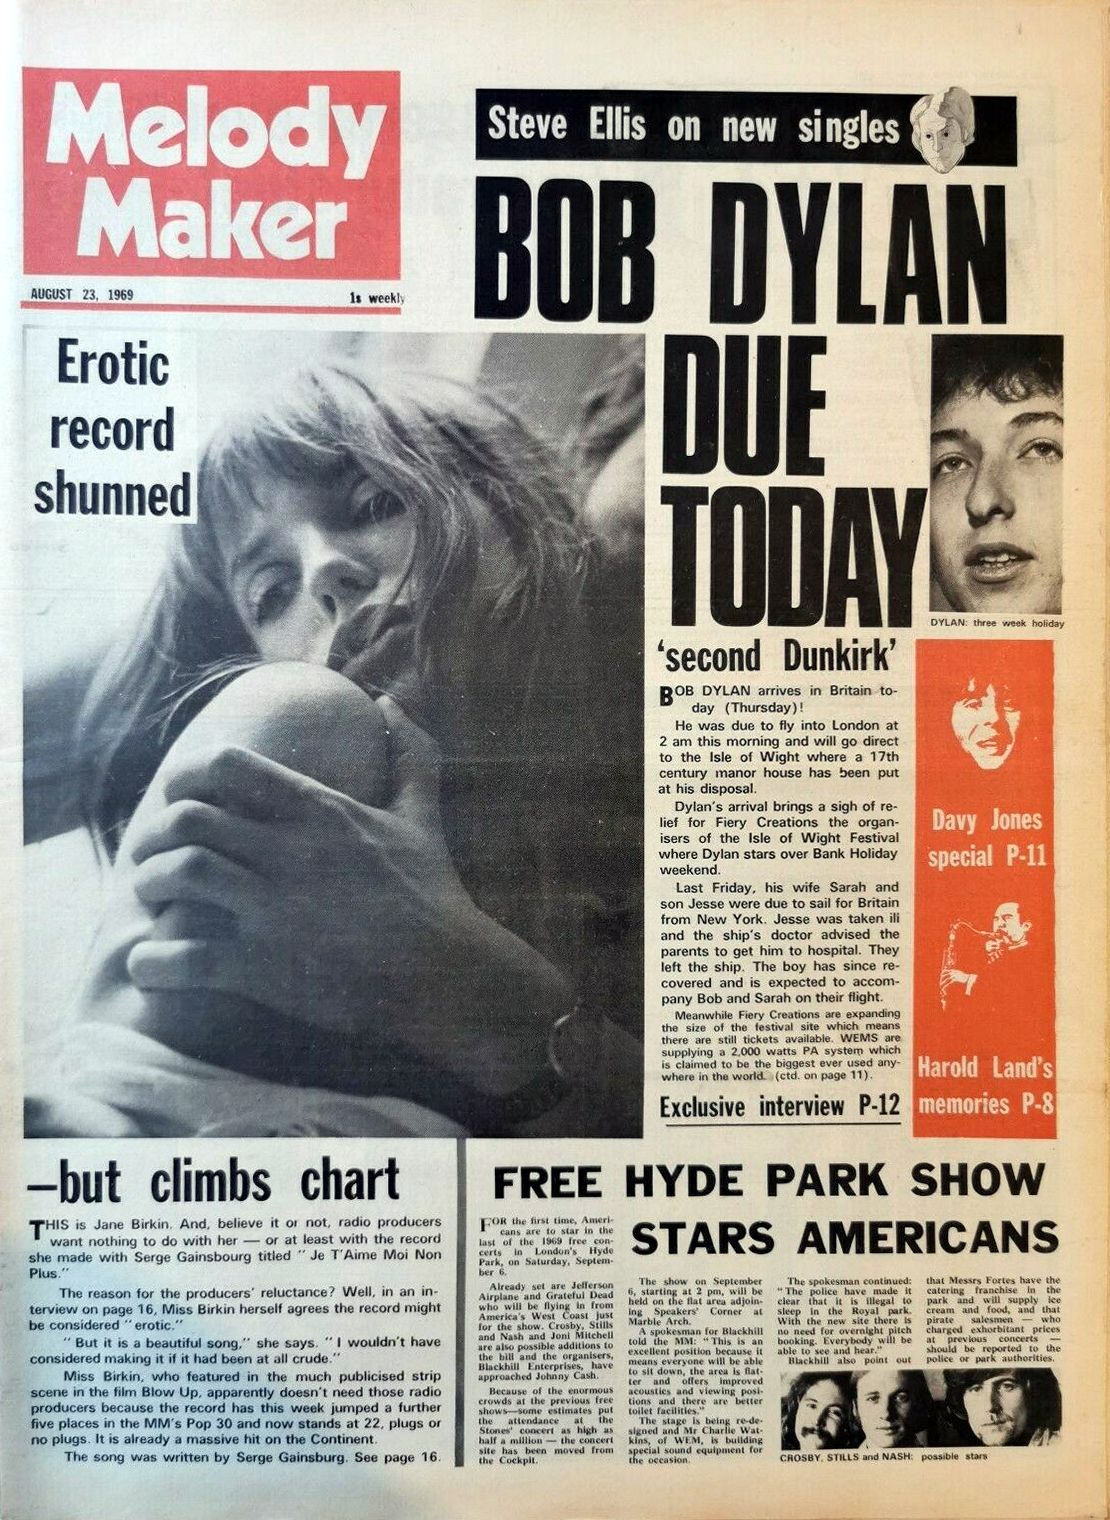 Melody Maker 23 August 1969 Bob Dylan cover story